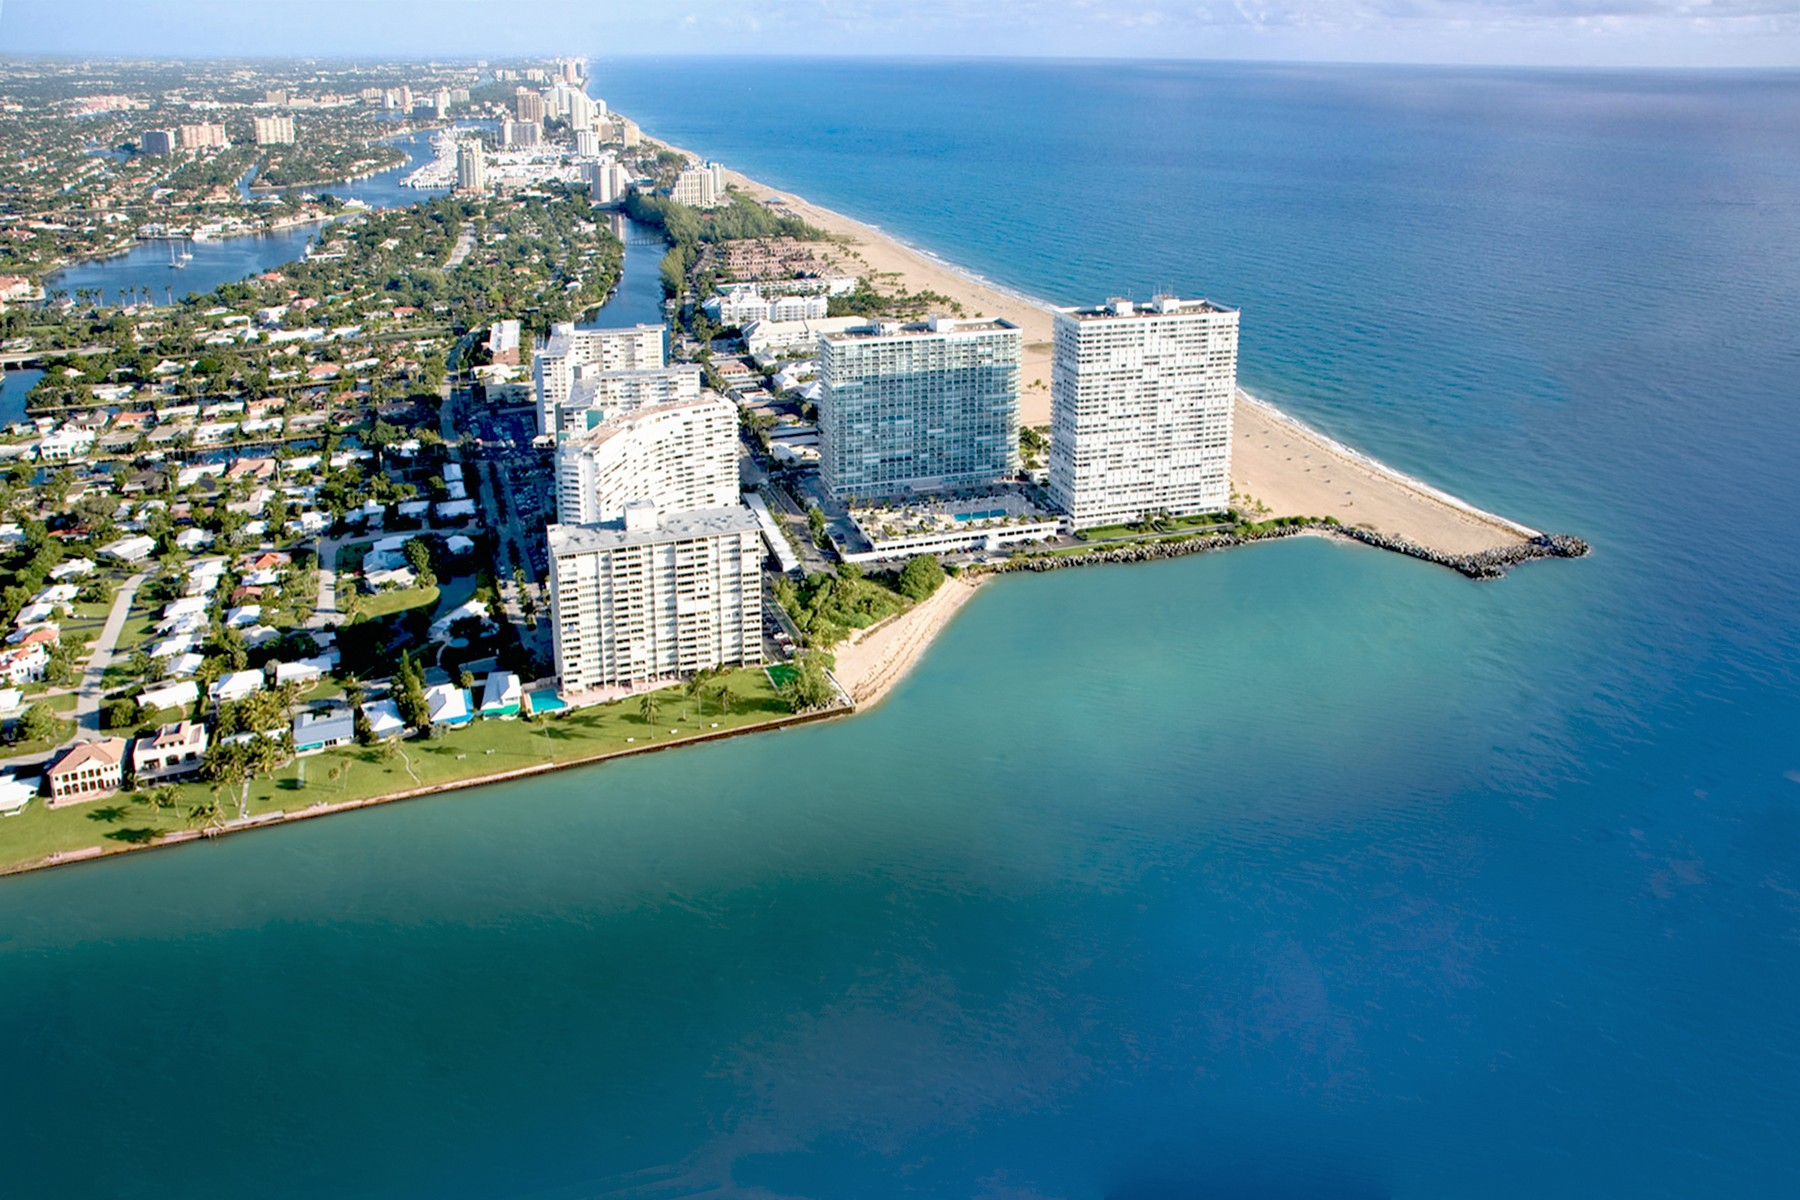 Condominium for Sale at Point of Americas 2200 S. Ocean Ln. #2501 Fort Lauderdale, Florida 33316 United States